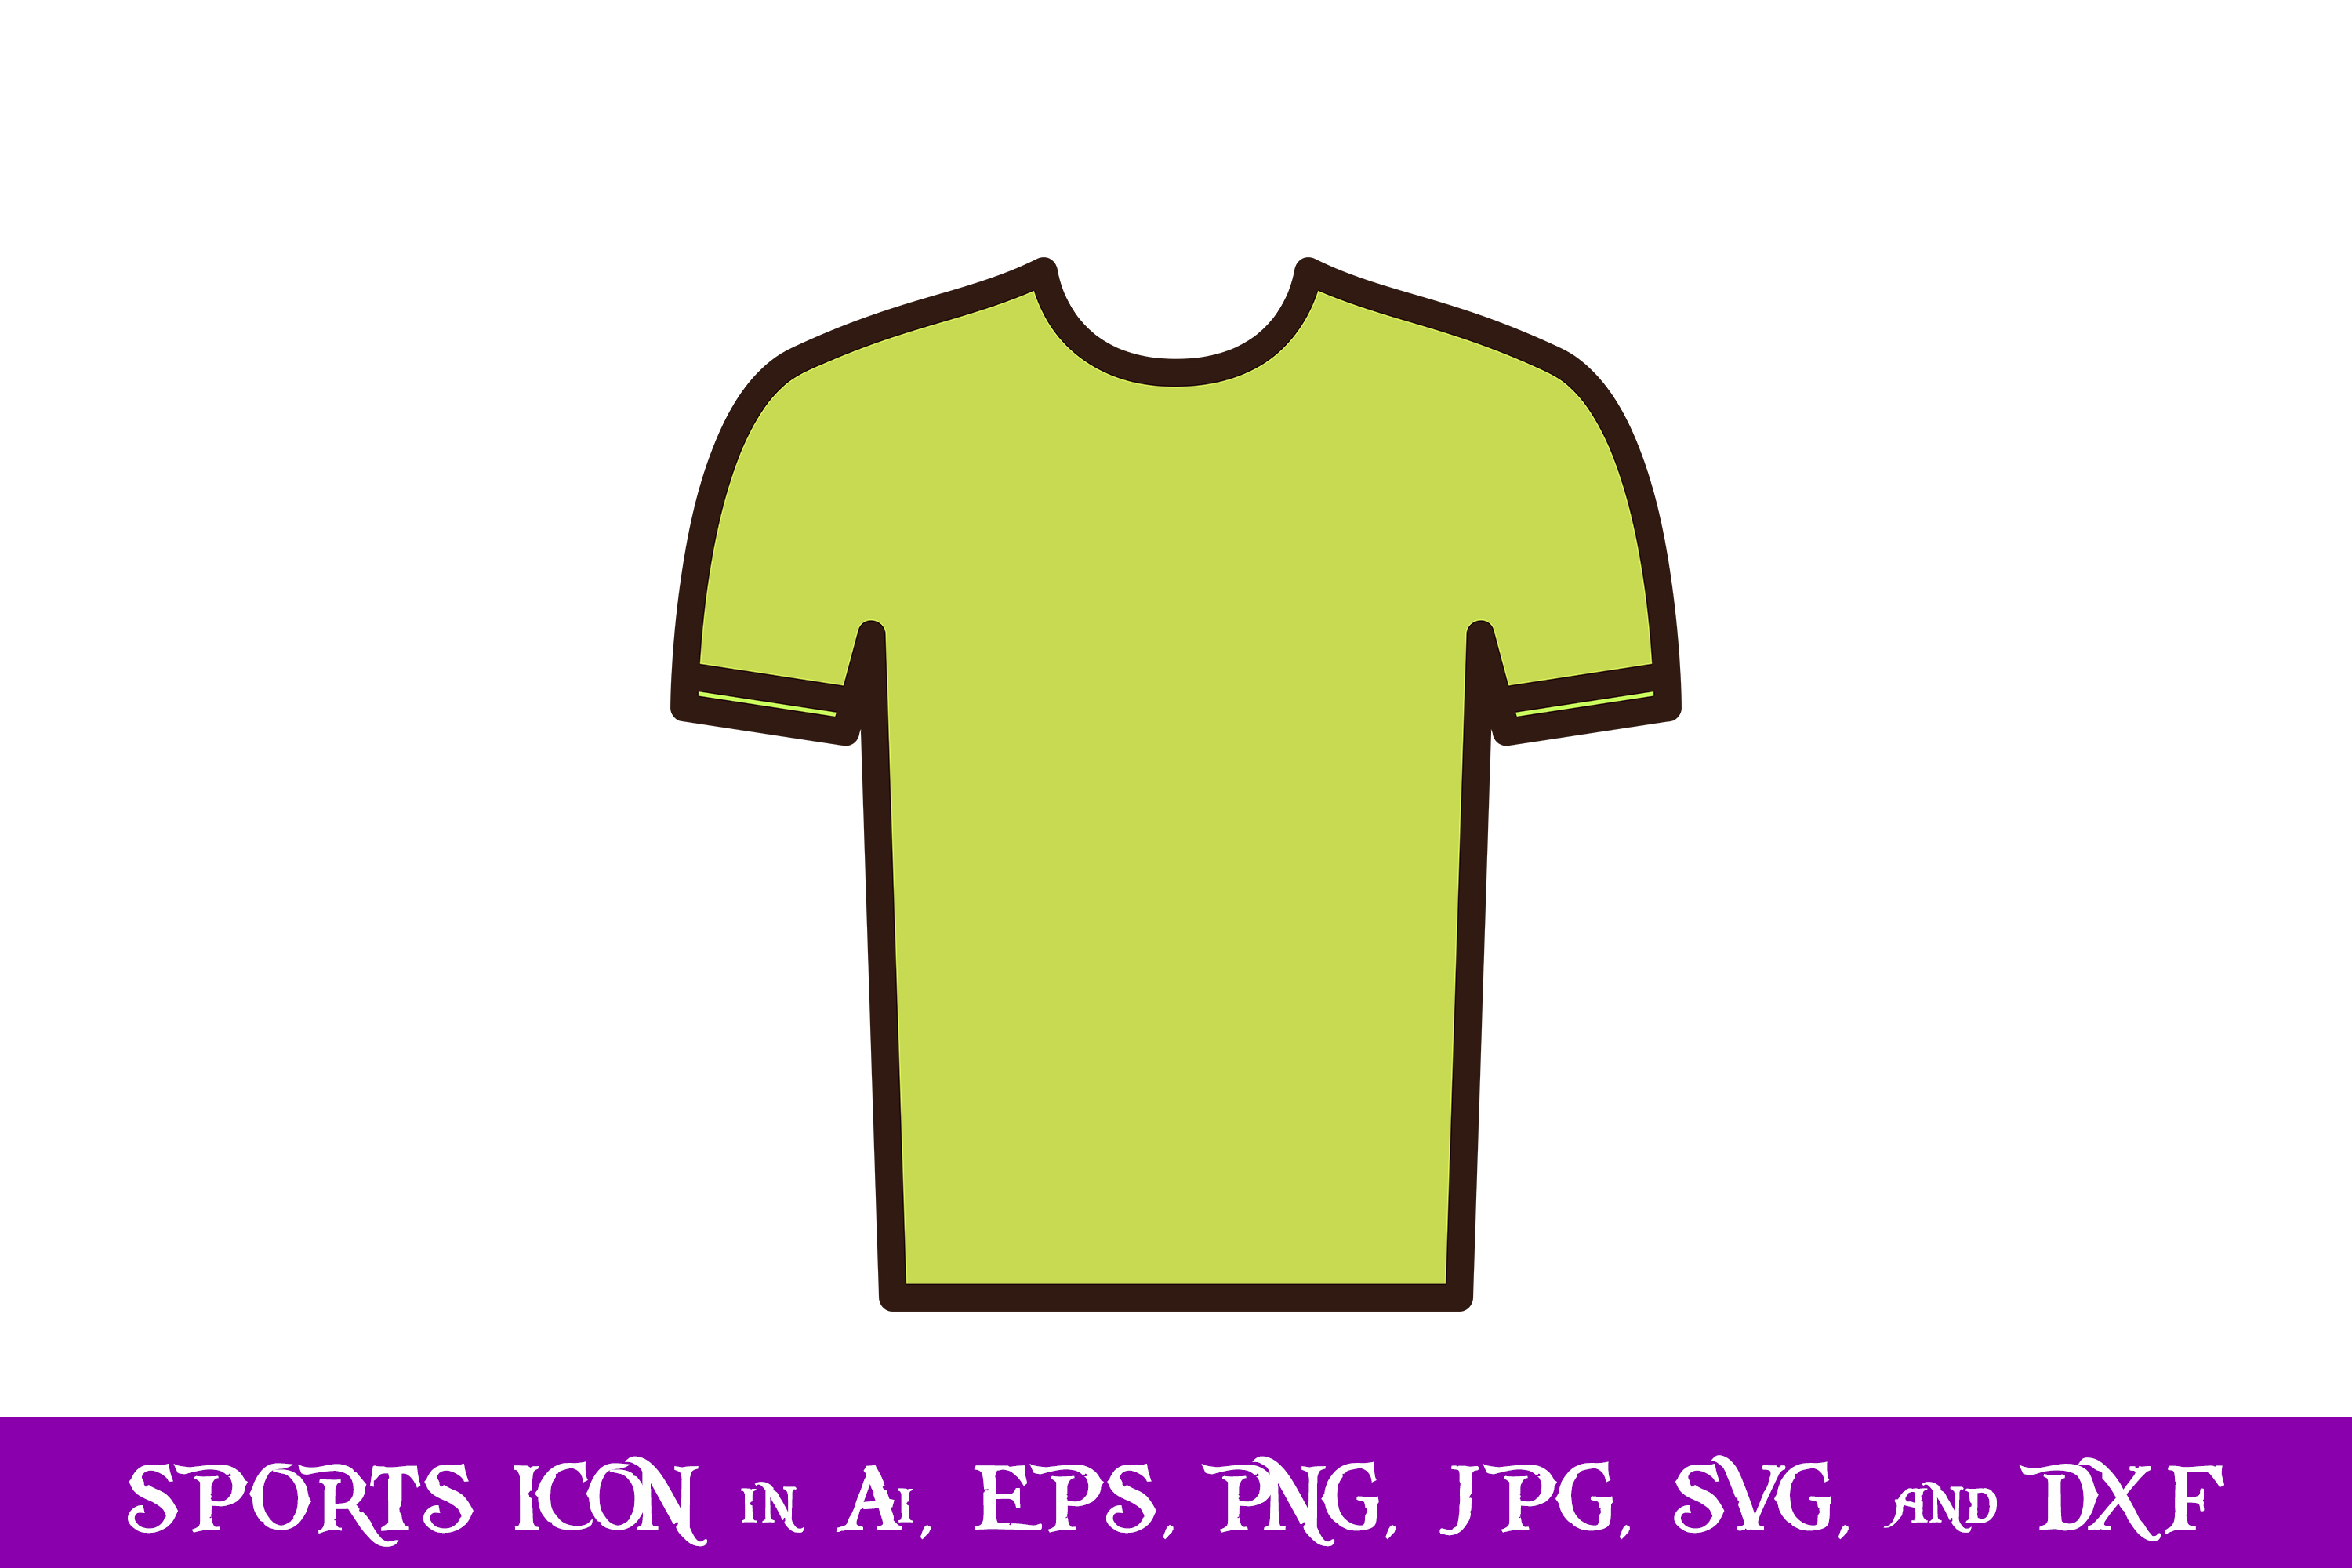 Download Free Shirt Sport Icon Graphic By Purplespoonpirates Creative Fabrica for Cricut Explore, Silhouette and other cutting machines.